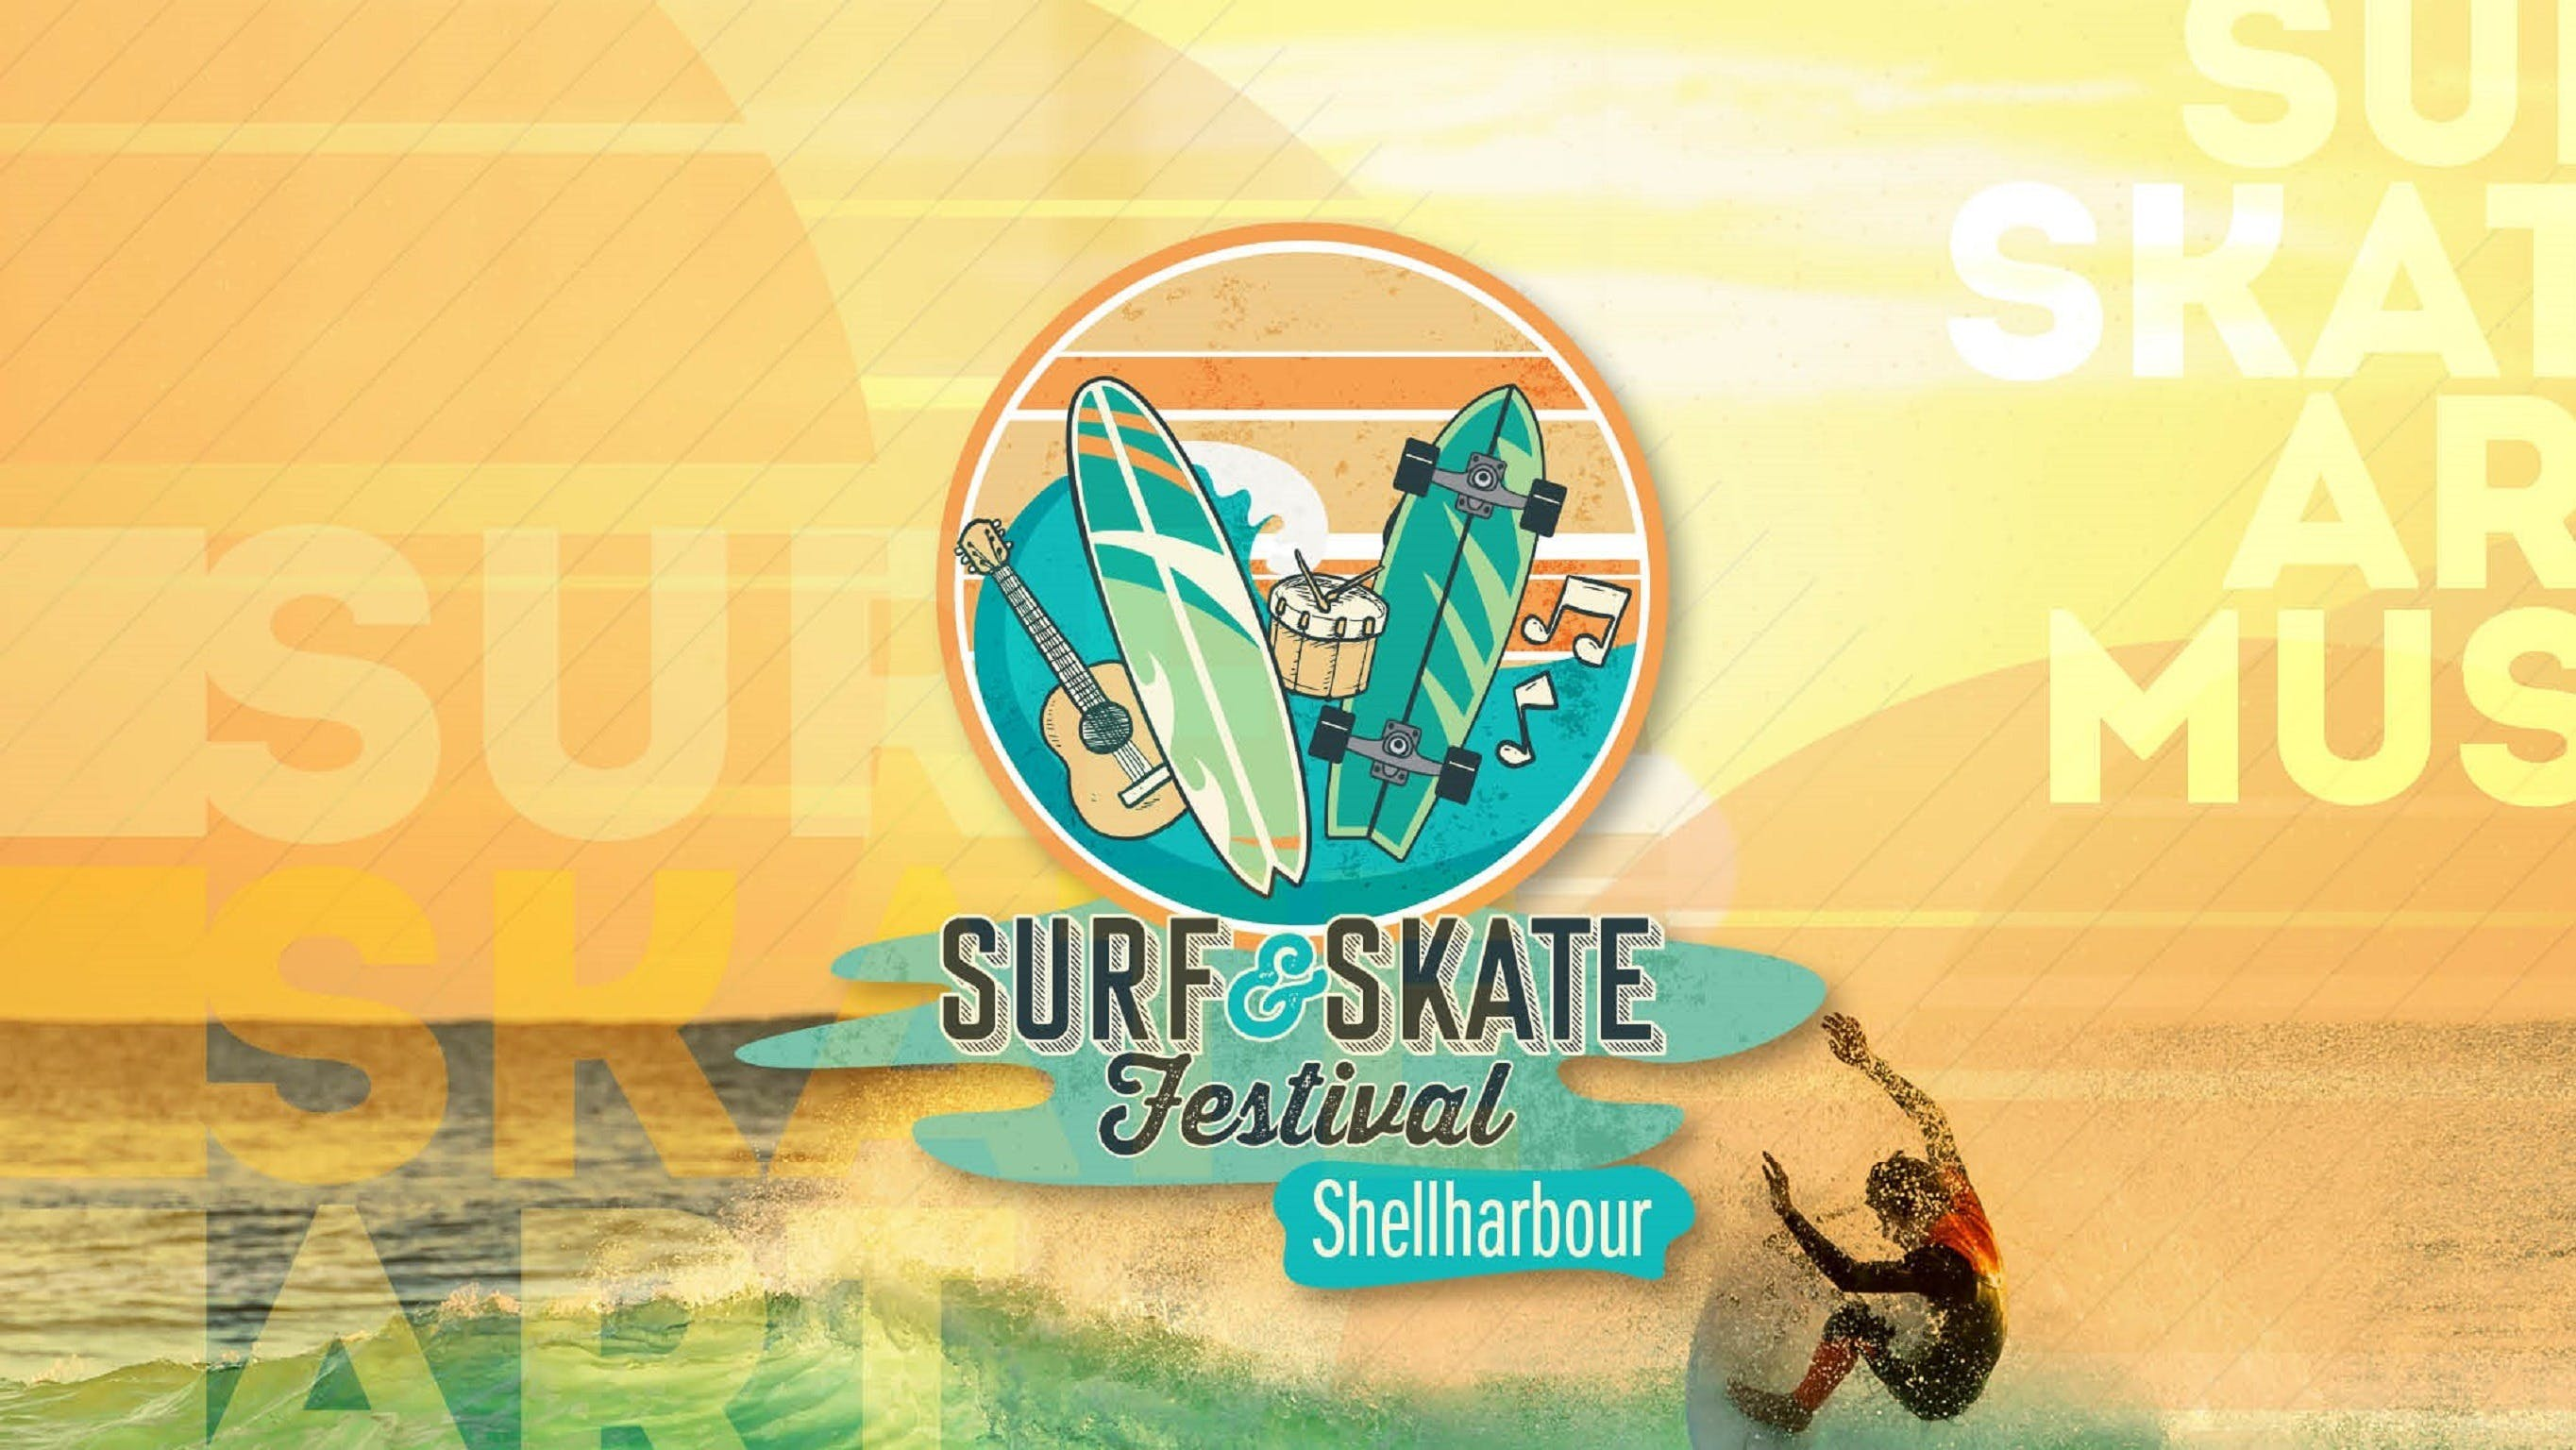 Skate and Surf Festival Shellharbour - Broome Tourism